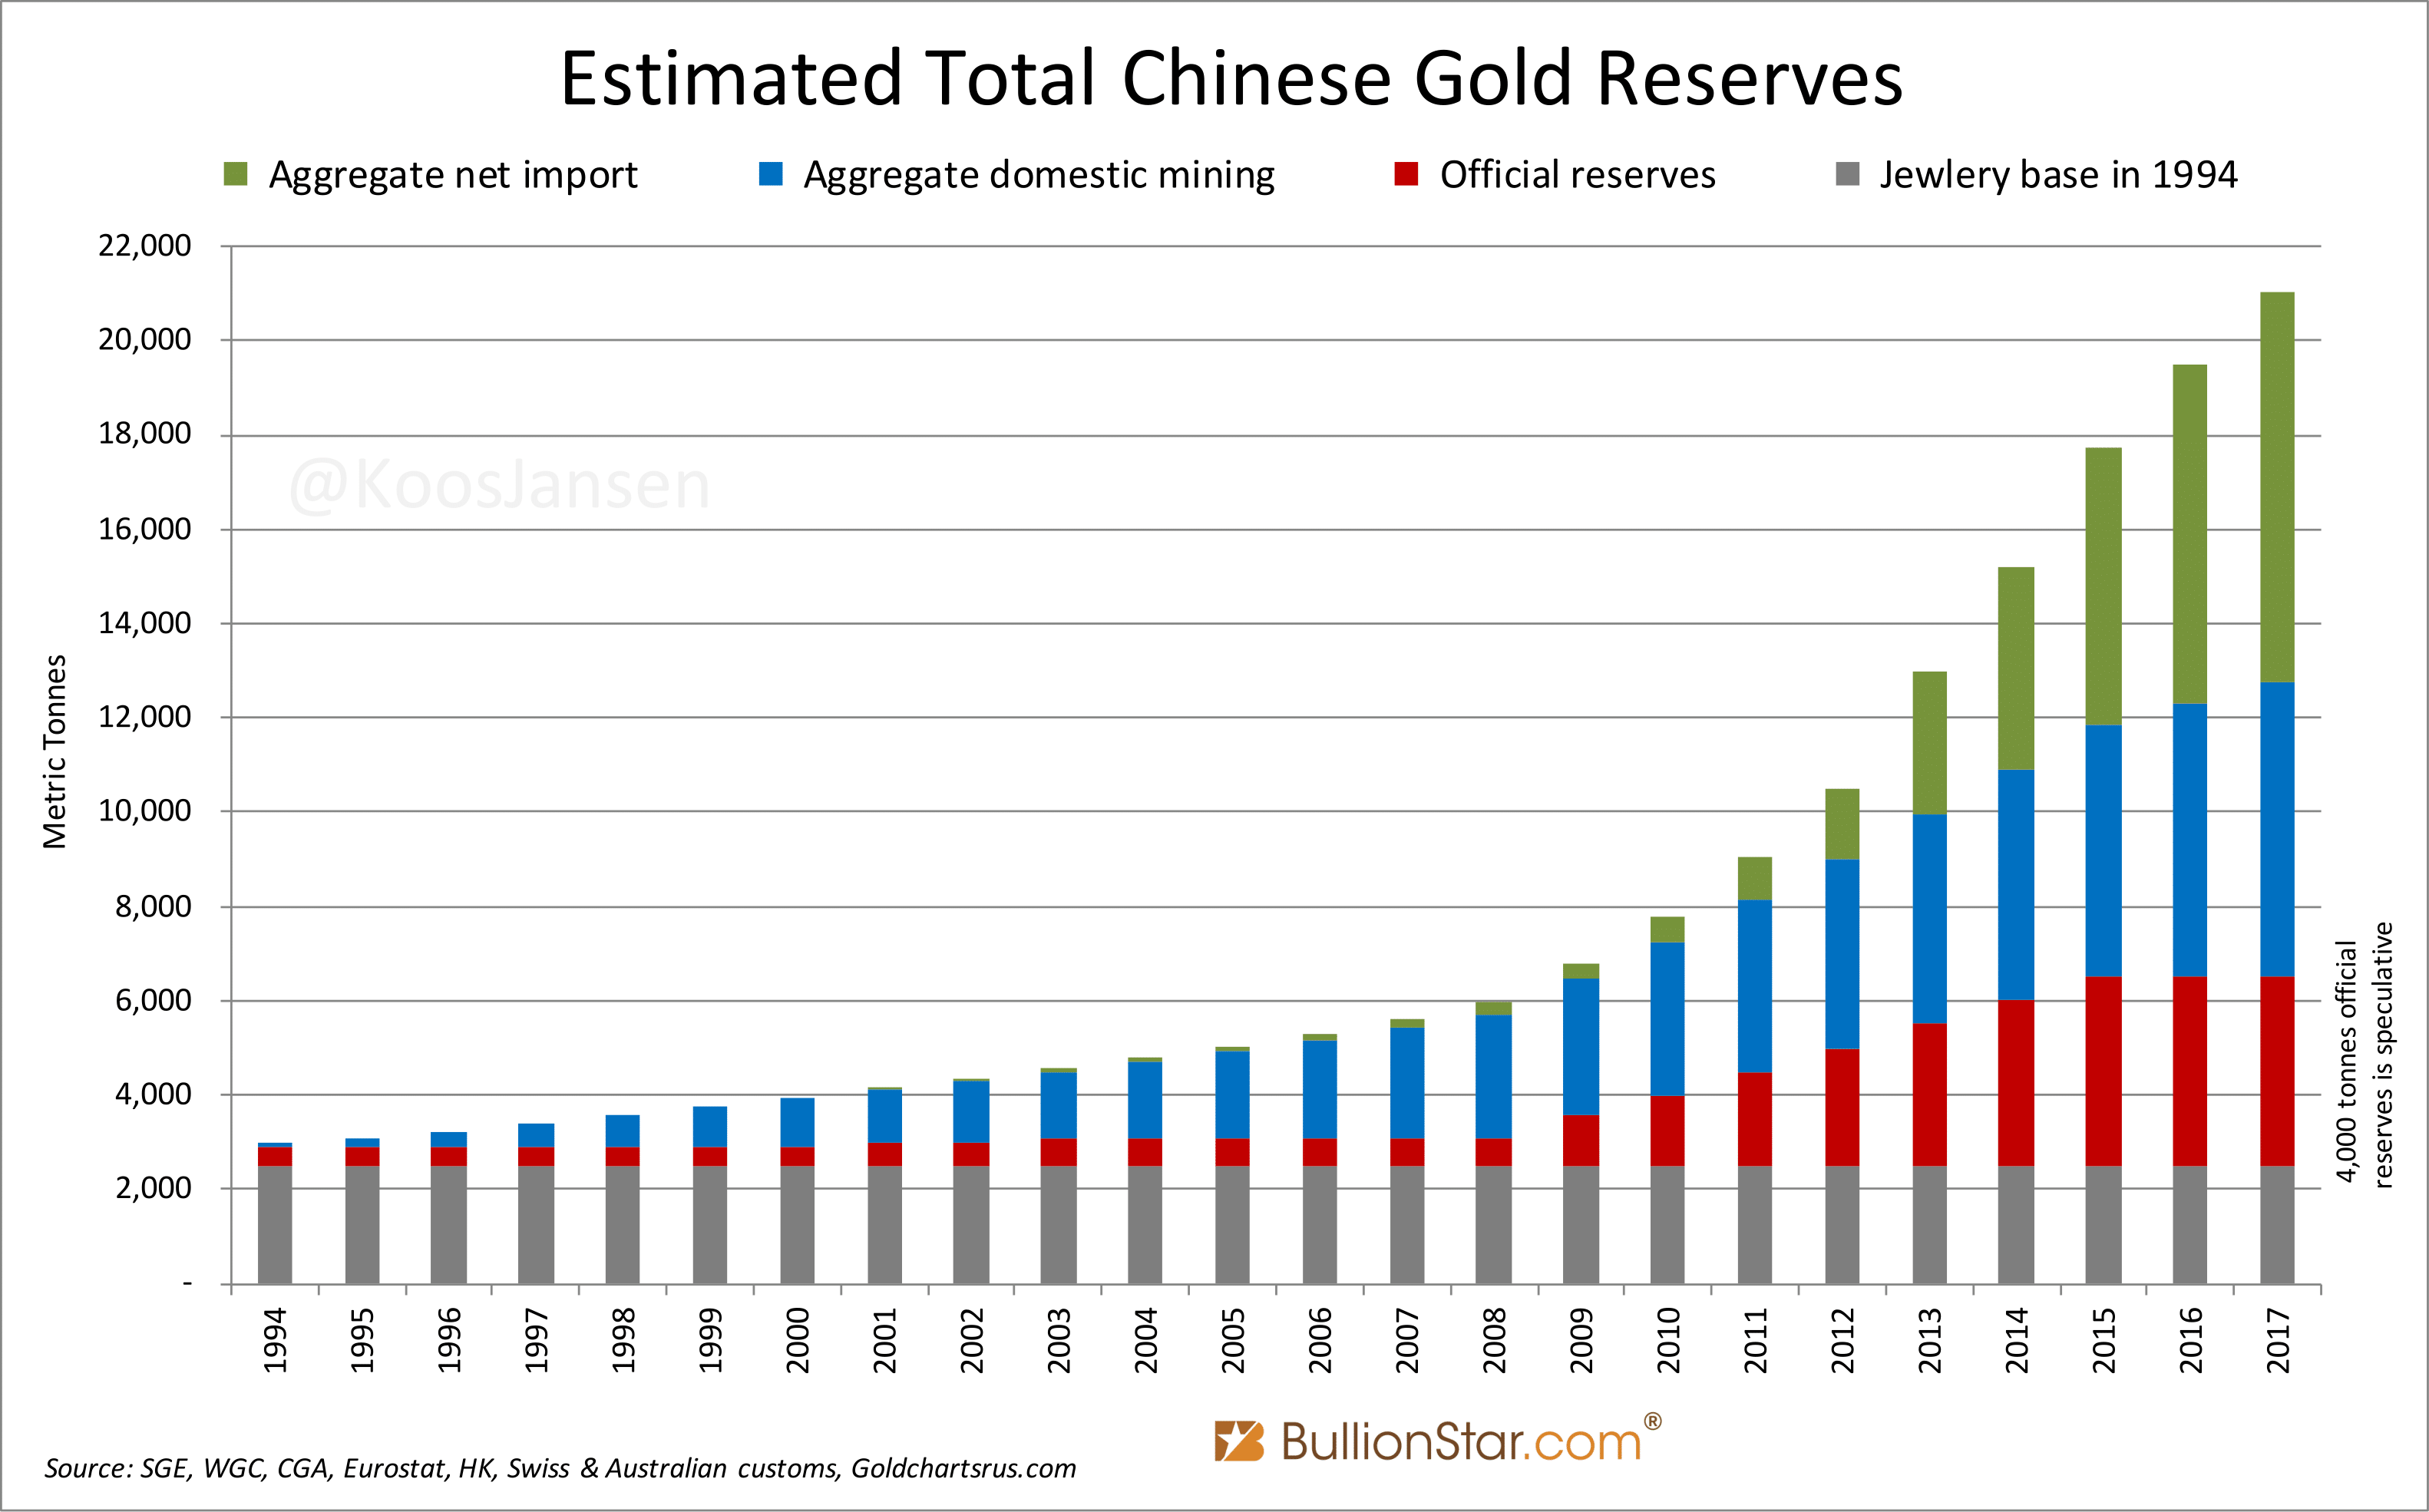 Estimated Total Chinese Gold Reserves, 1994 - 2017